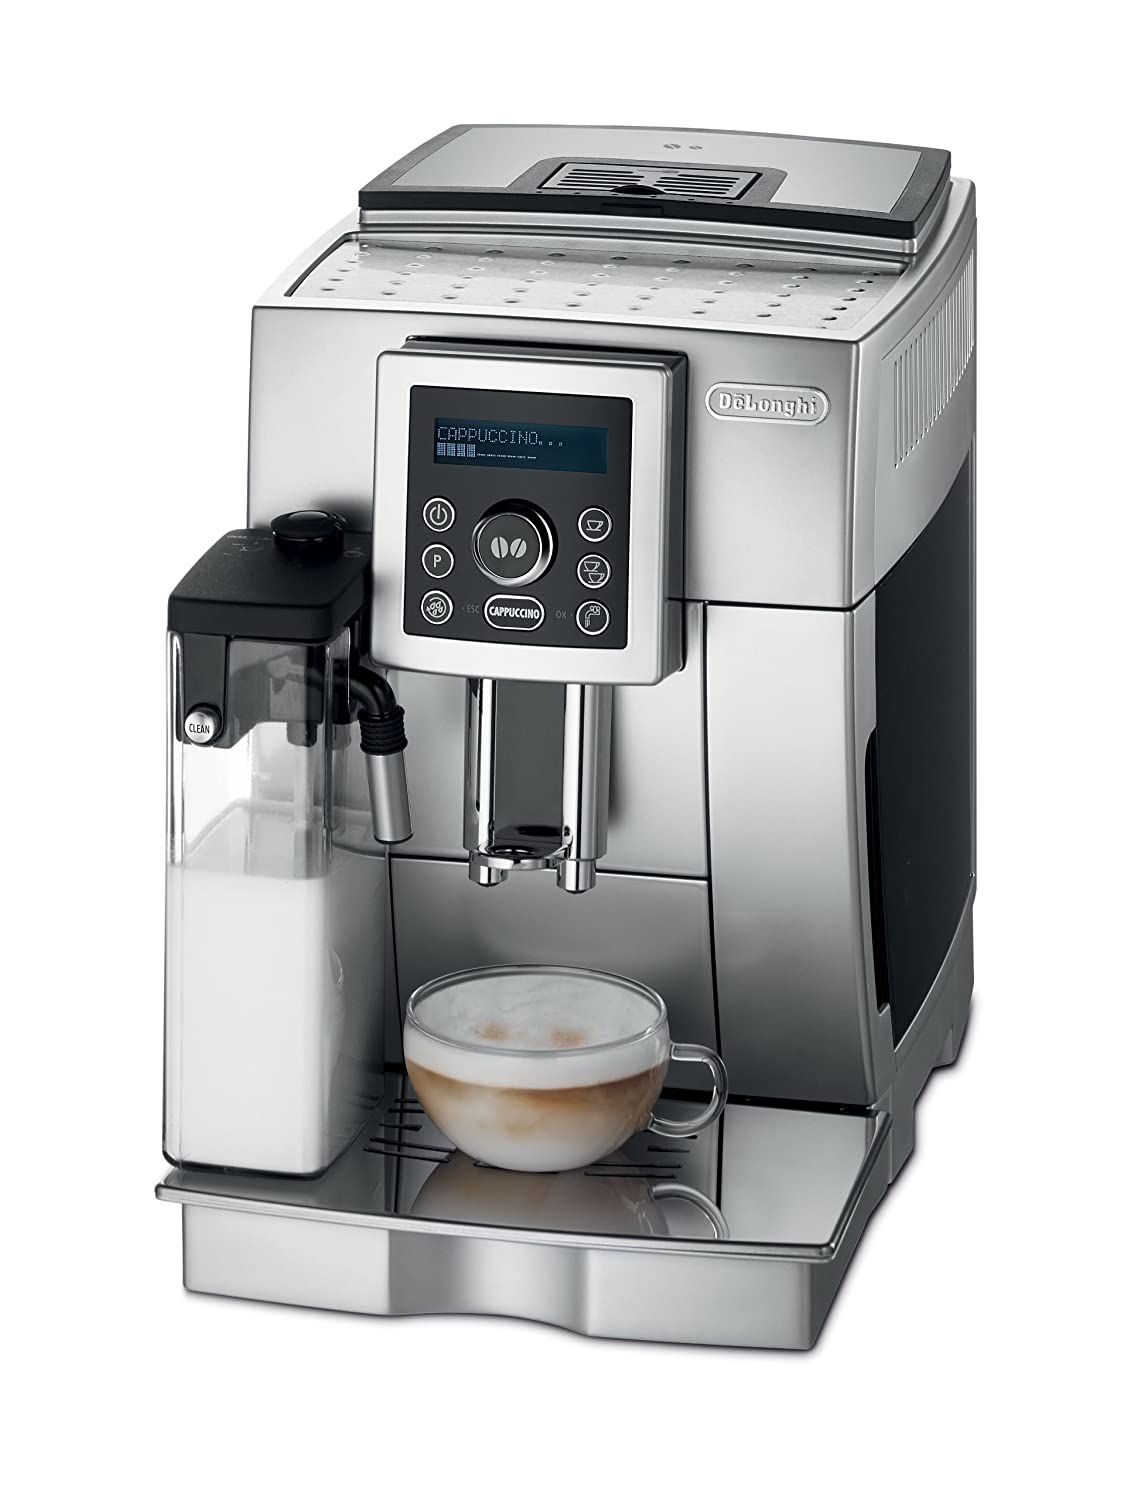 DeLonghi ECAM23450SL Superautomatic Espresso Machine, Silver by DeLonghi B003ZDNKU6